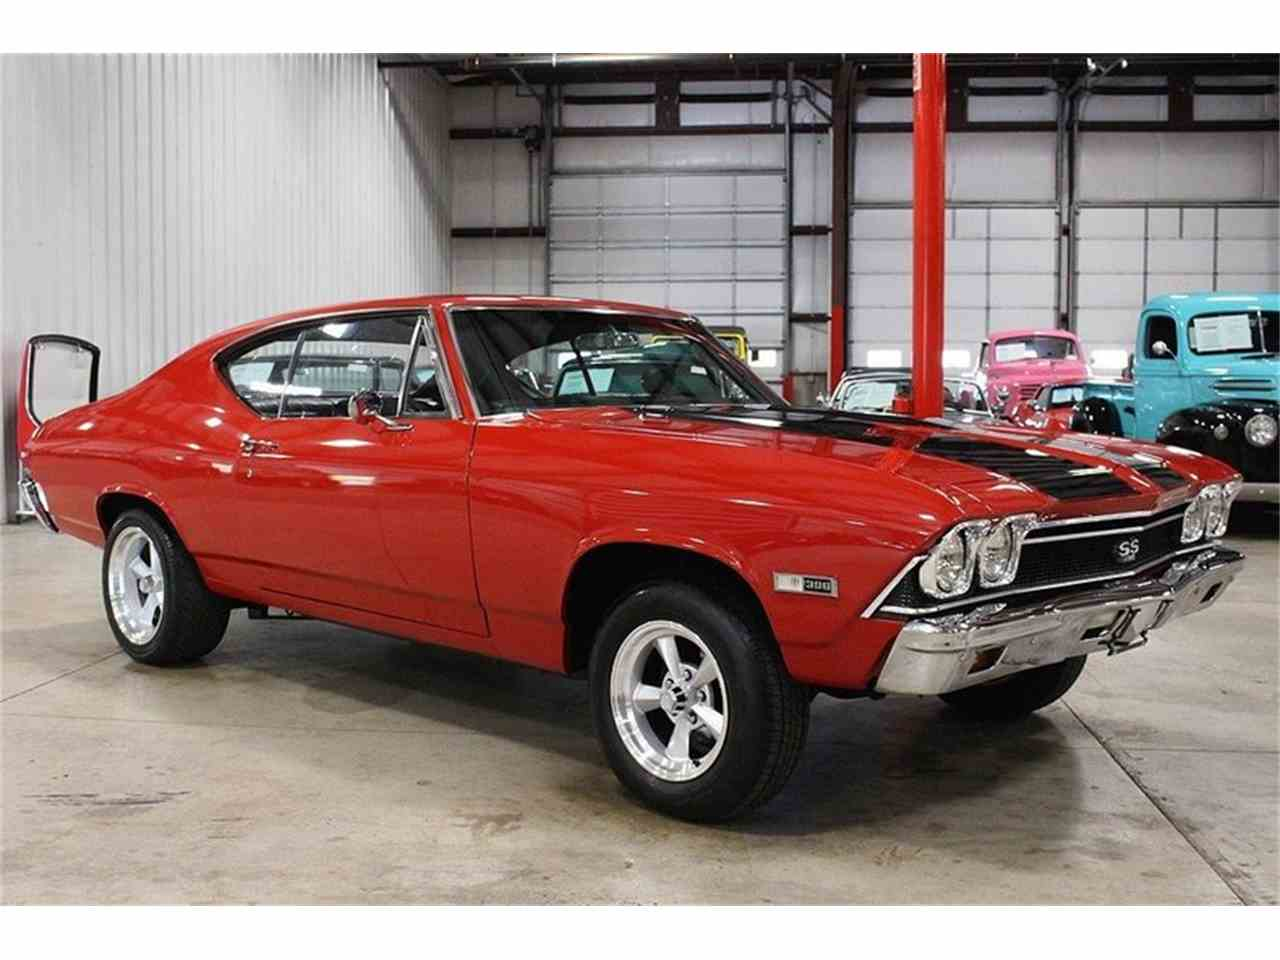 Large Picture of '68 Chevrolet Chevelle located in Michigan - $36,900.00 - LWG2